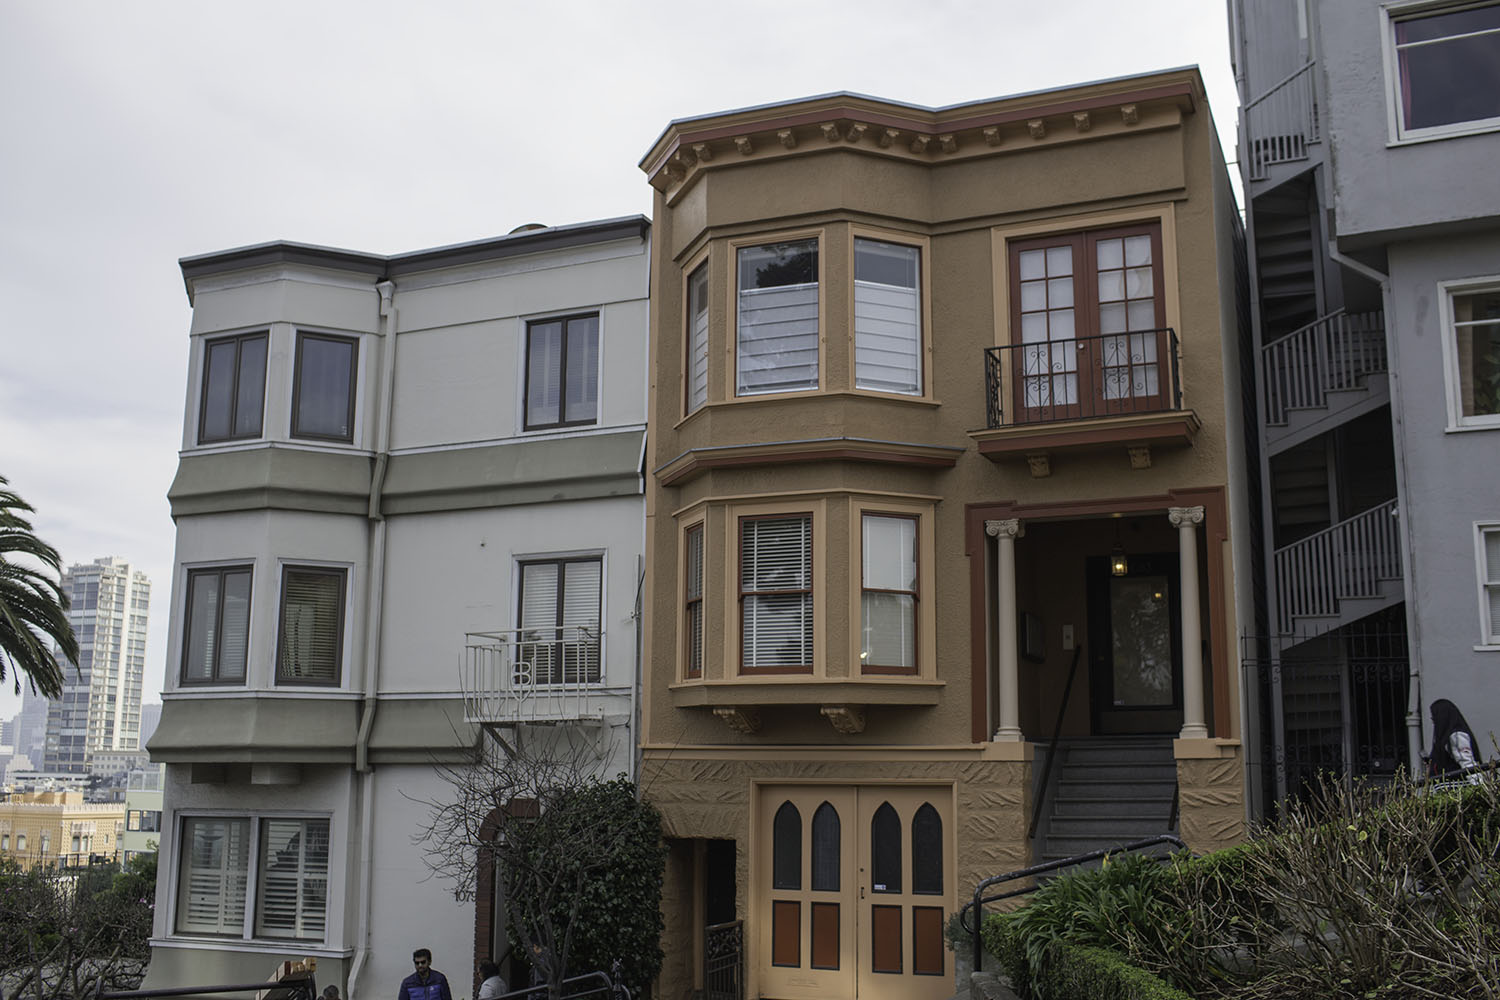 SanFrancisco_CA_RussianHill_004.jpg